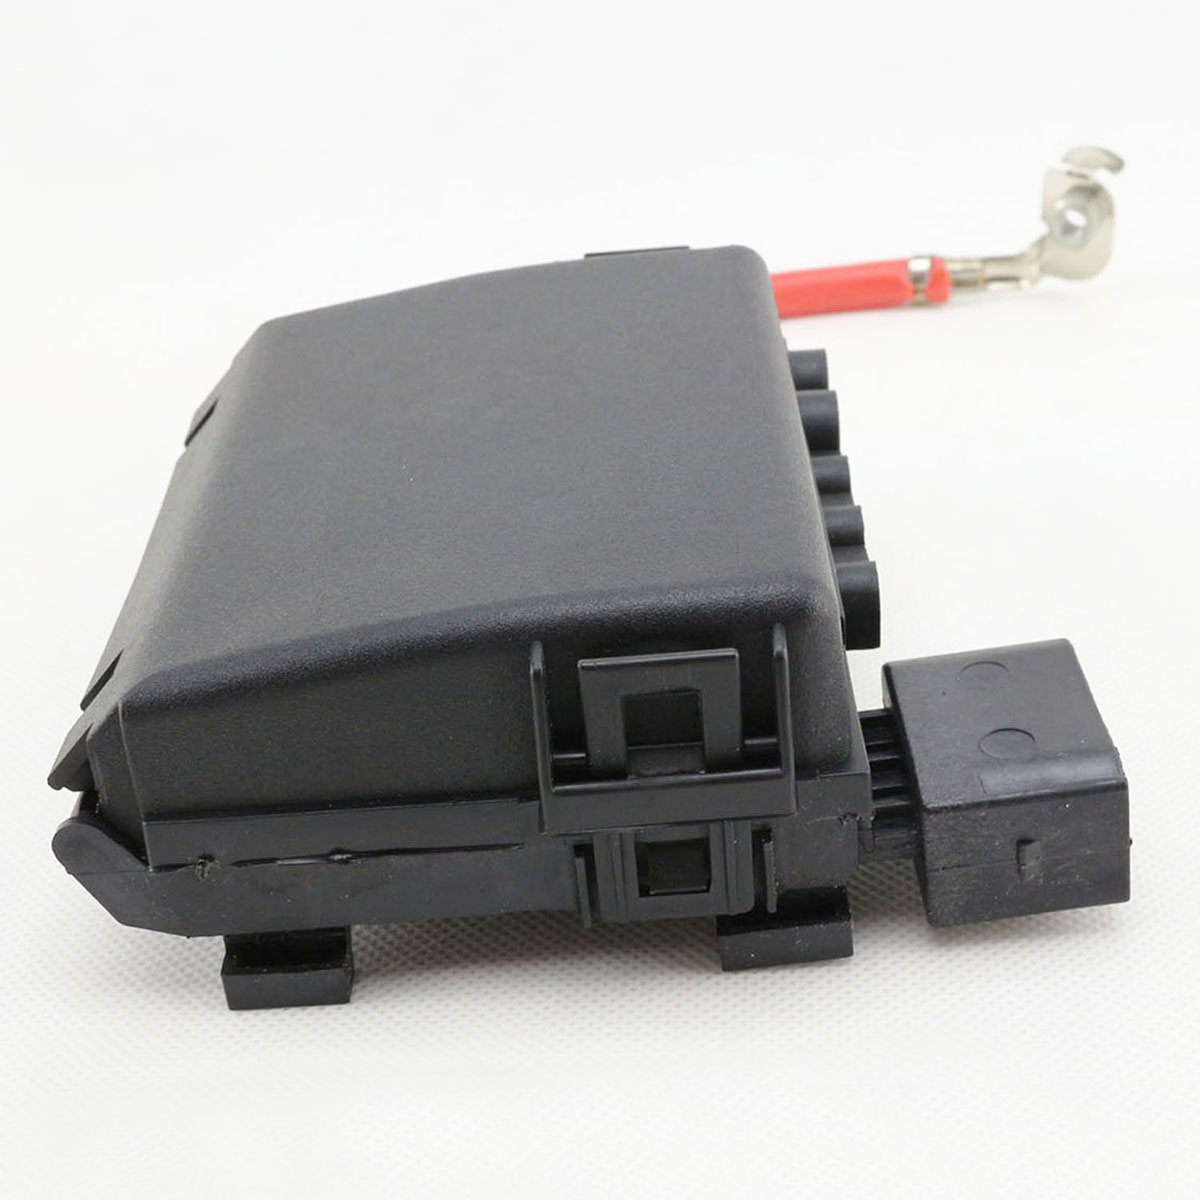 New Battery Terminal Fuse Box Holder for VW Jetta Golf MK4 Bora Beetle new battery terminal fuse box holder for vw jetta golf mk4 bora MK4 Fuse Box Diagram at cos-gaming.co